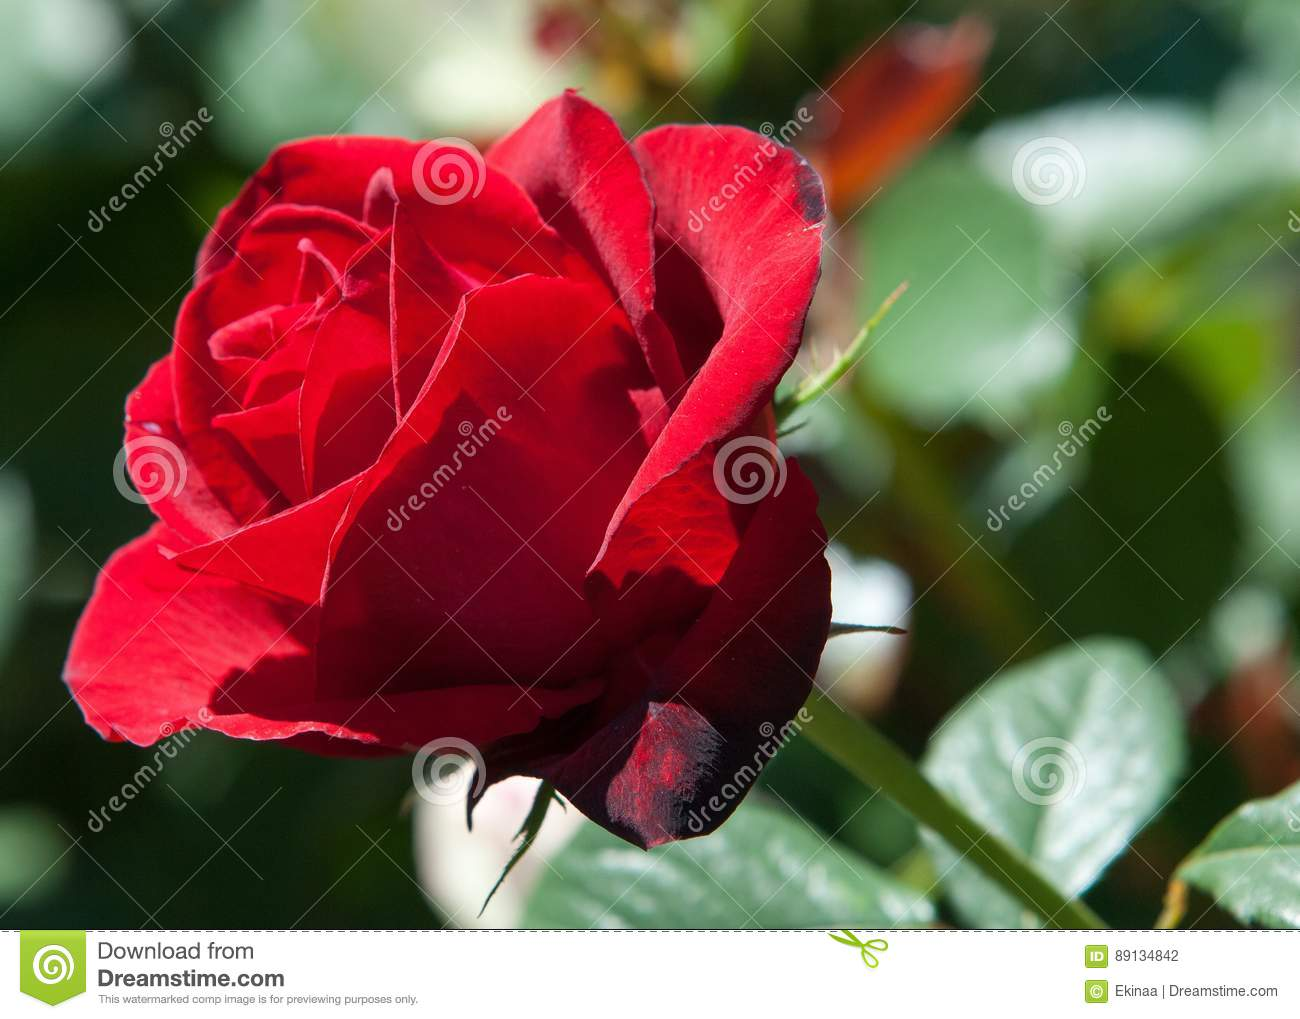 Rose a prickly bush or shrub that typically bears red pink yellow rose a prickly bush or shrub that typically bears red pink yellow or white fragrant flowers native to north temperate regions mightylinksfo